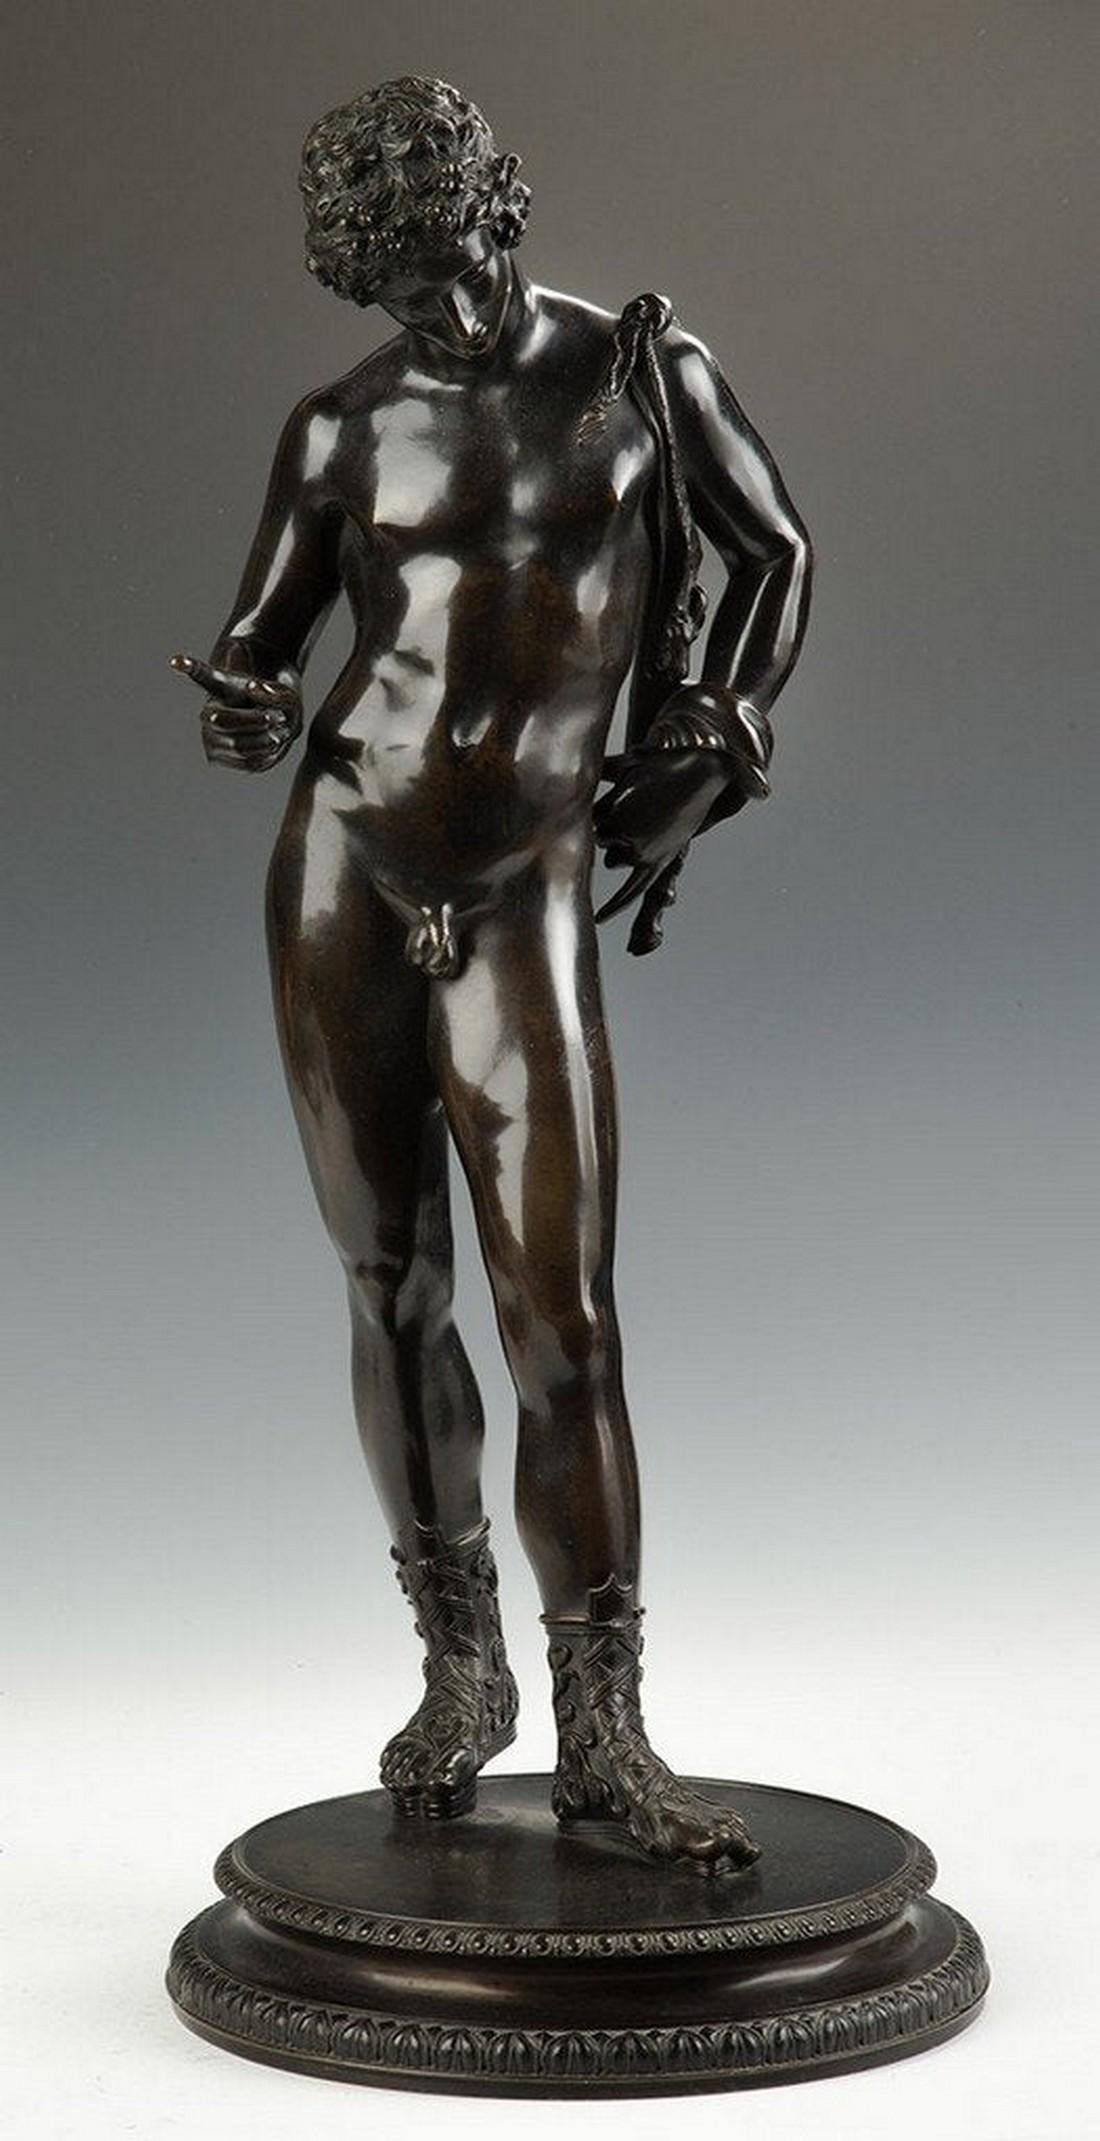 Bronze Sculpture of Greek Male Figure